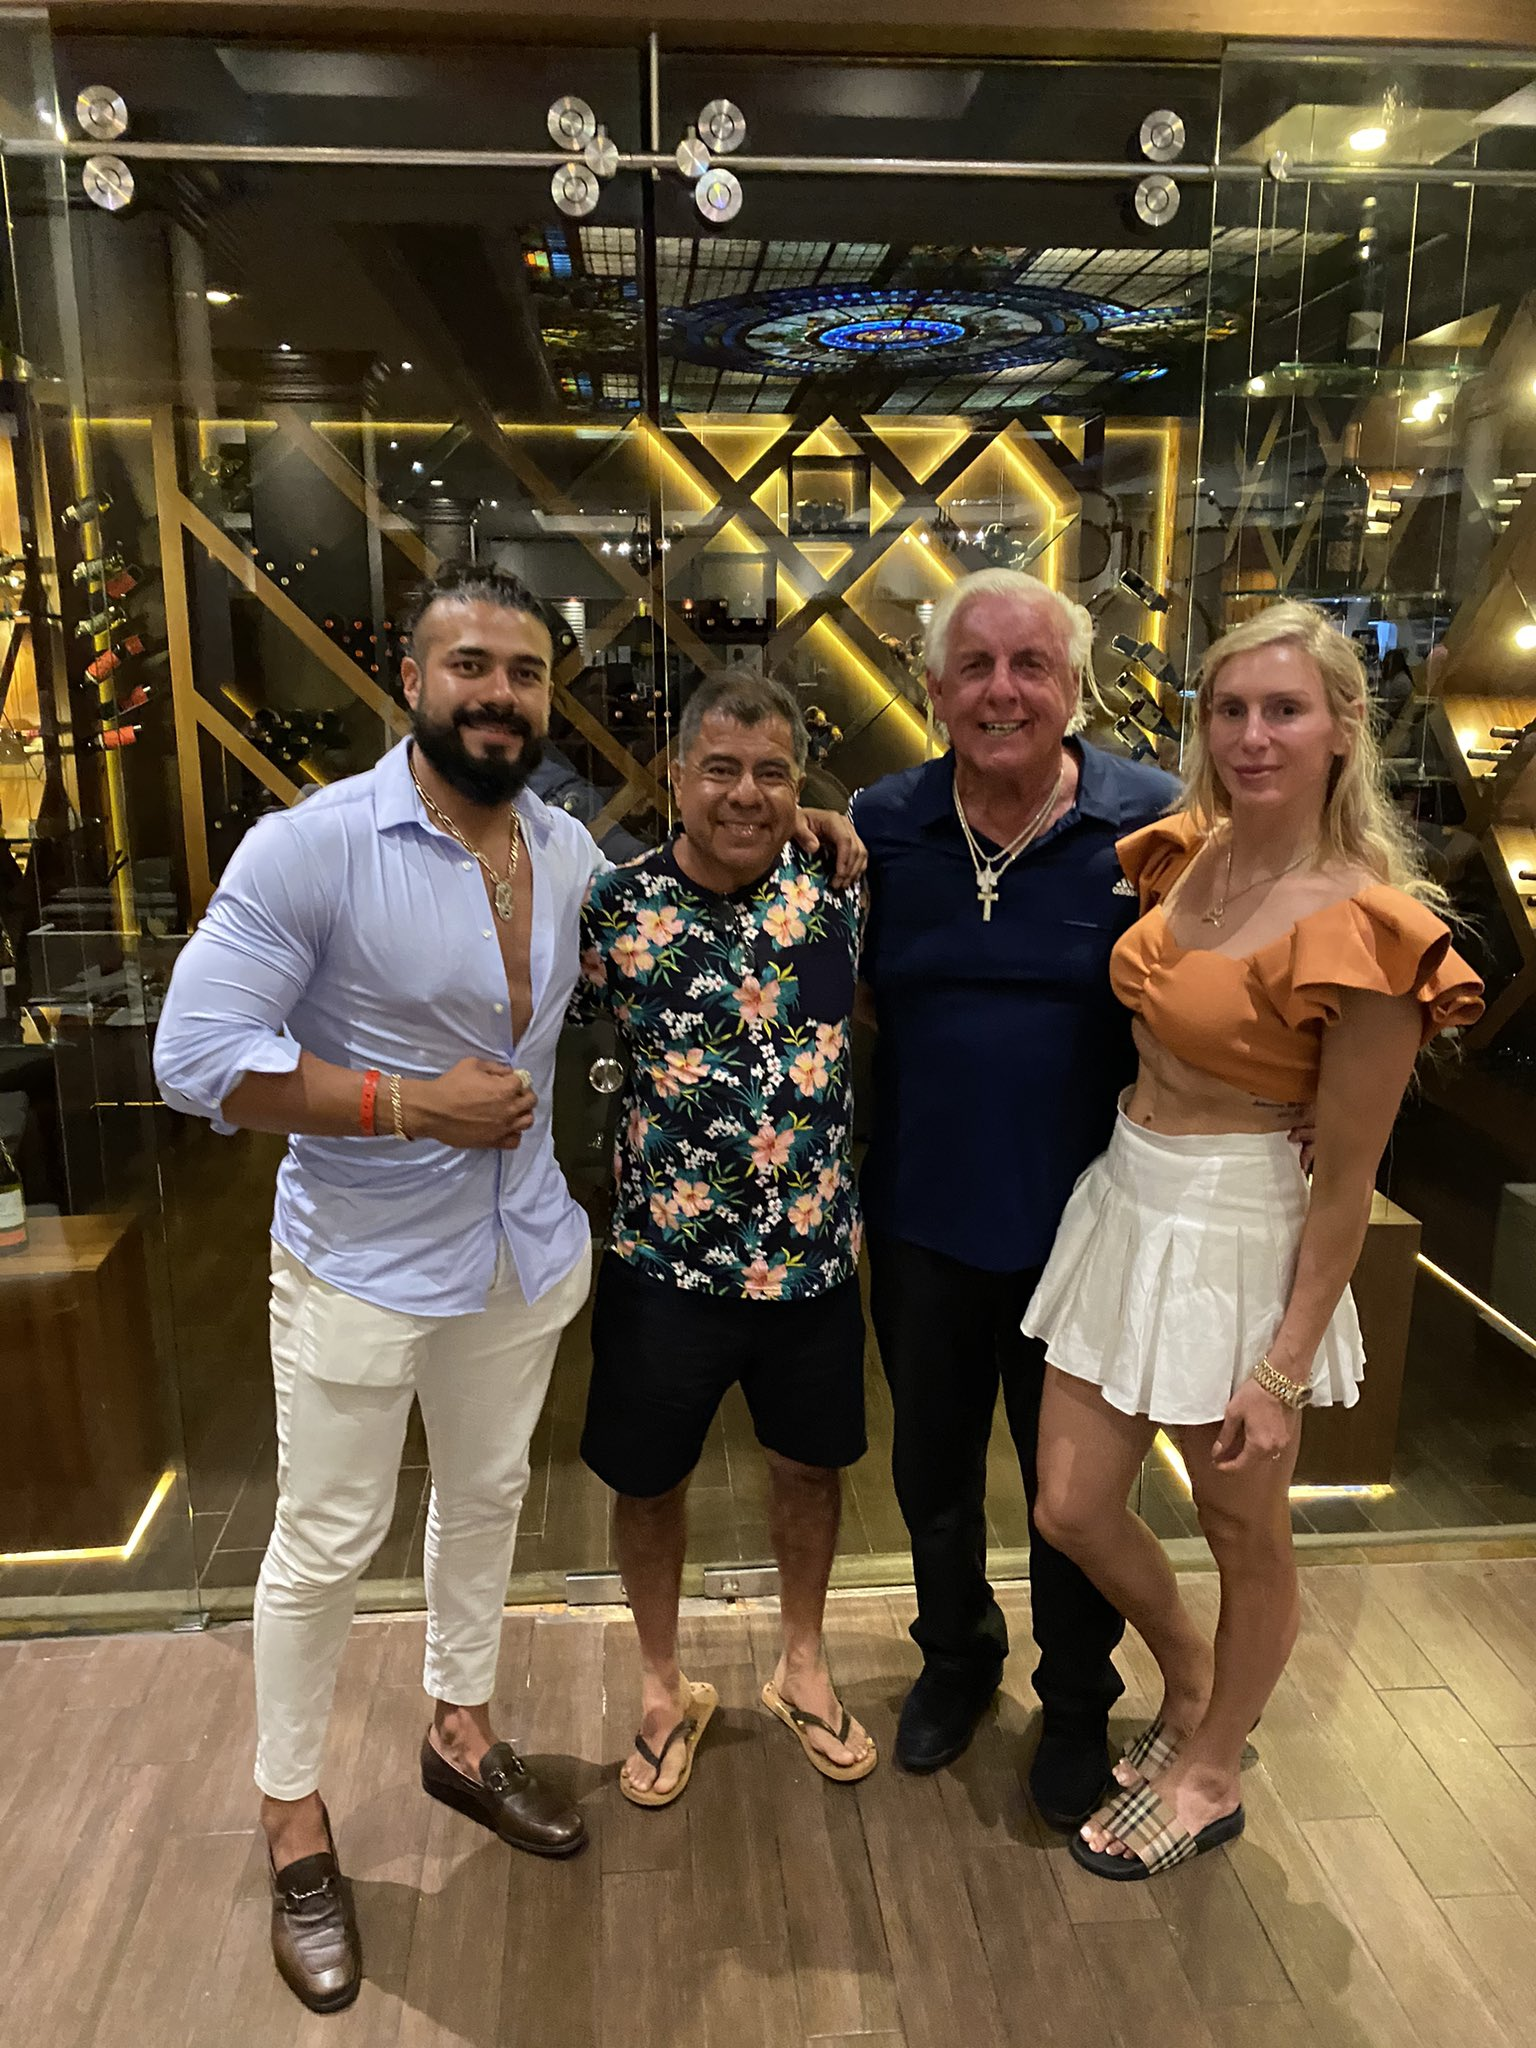 WWE Star Charlotte Flair Sparks Pregnancy Rumors With Fiancée Andrade 2